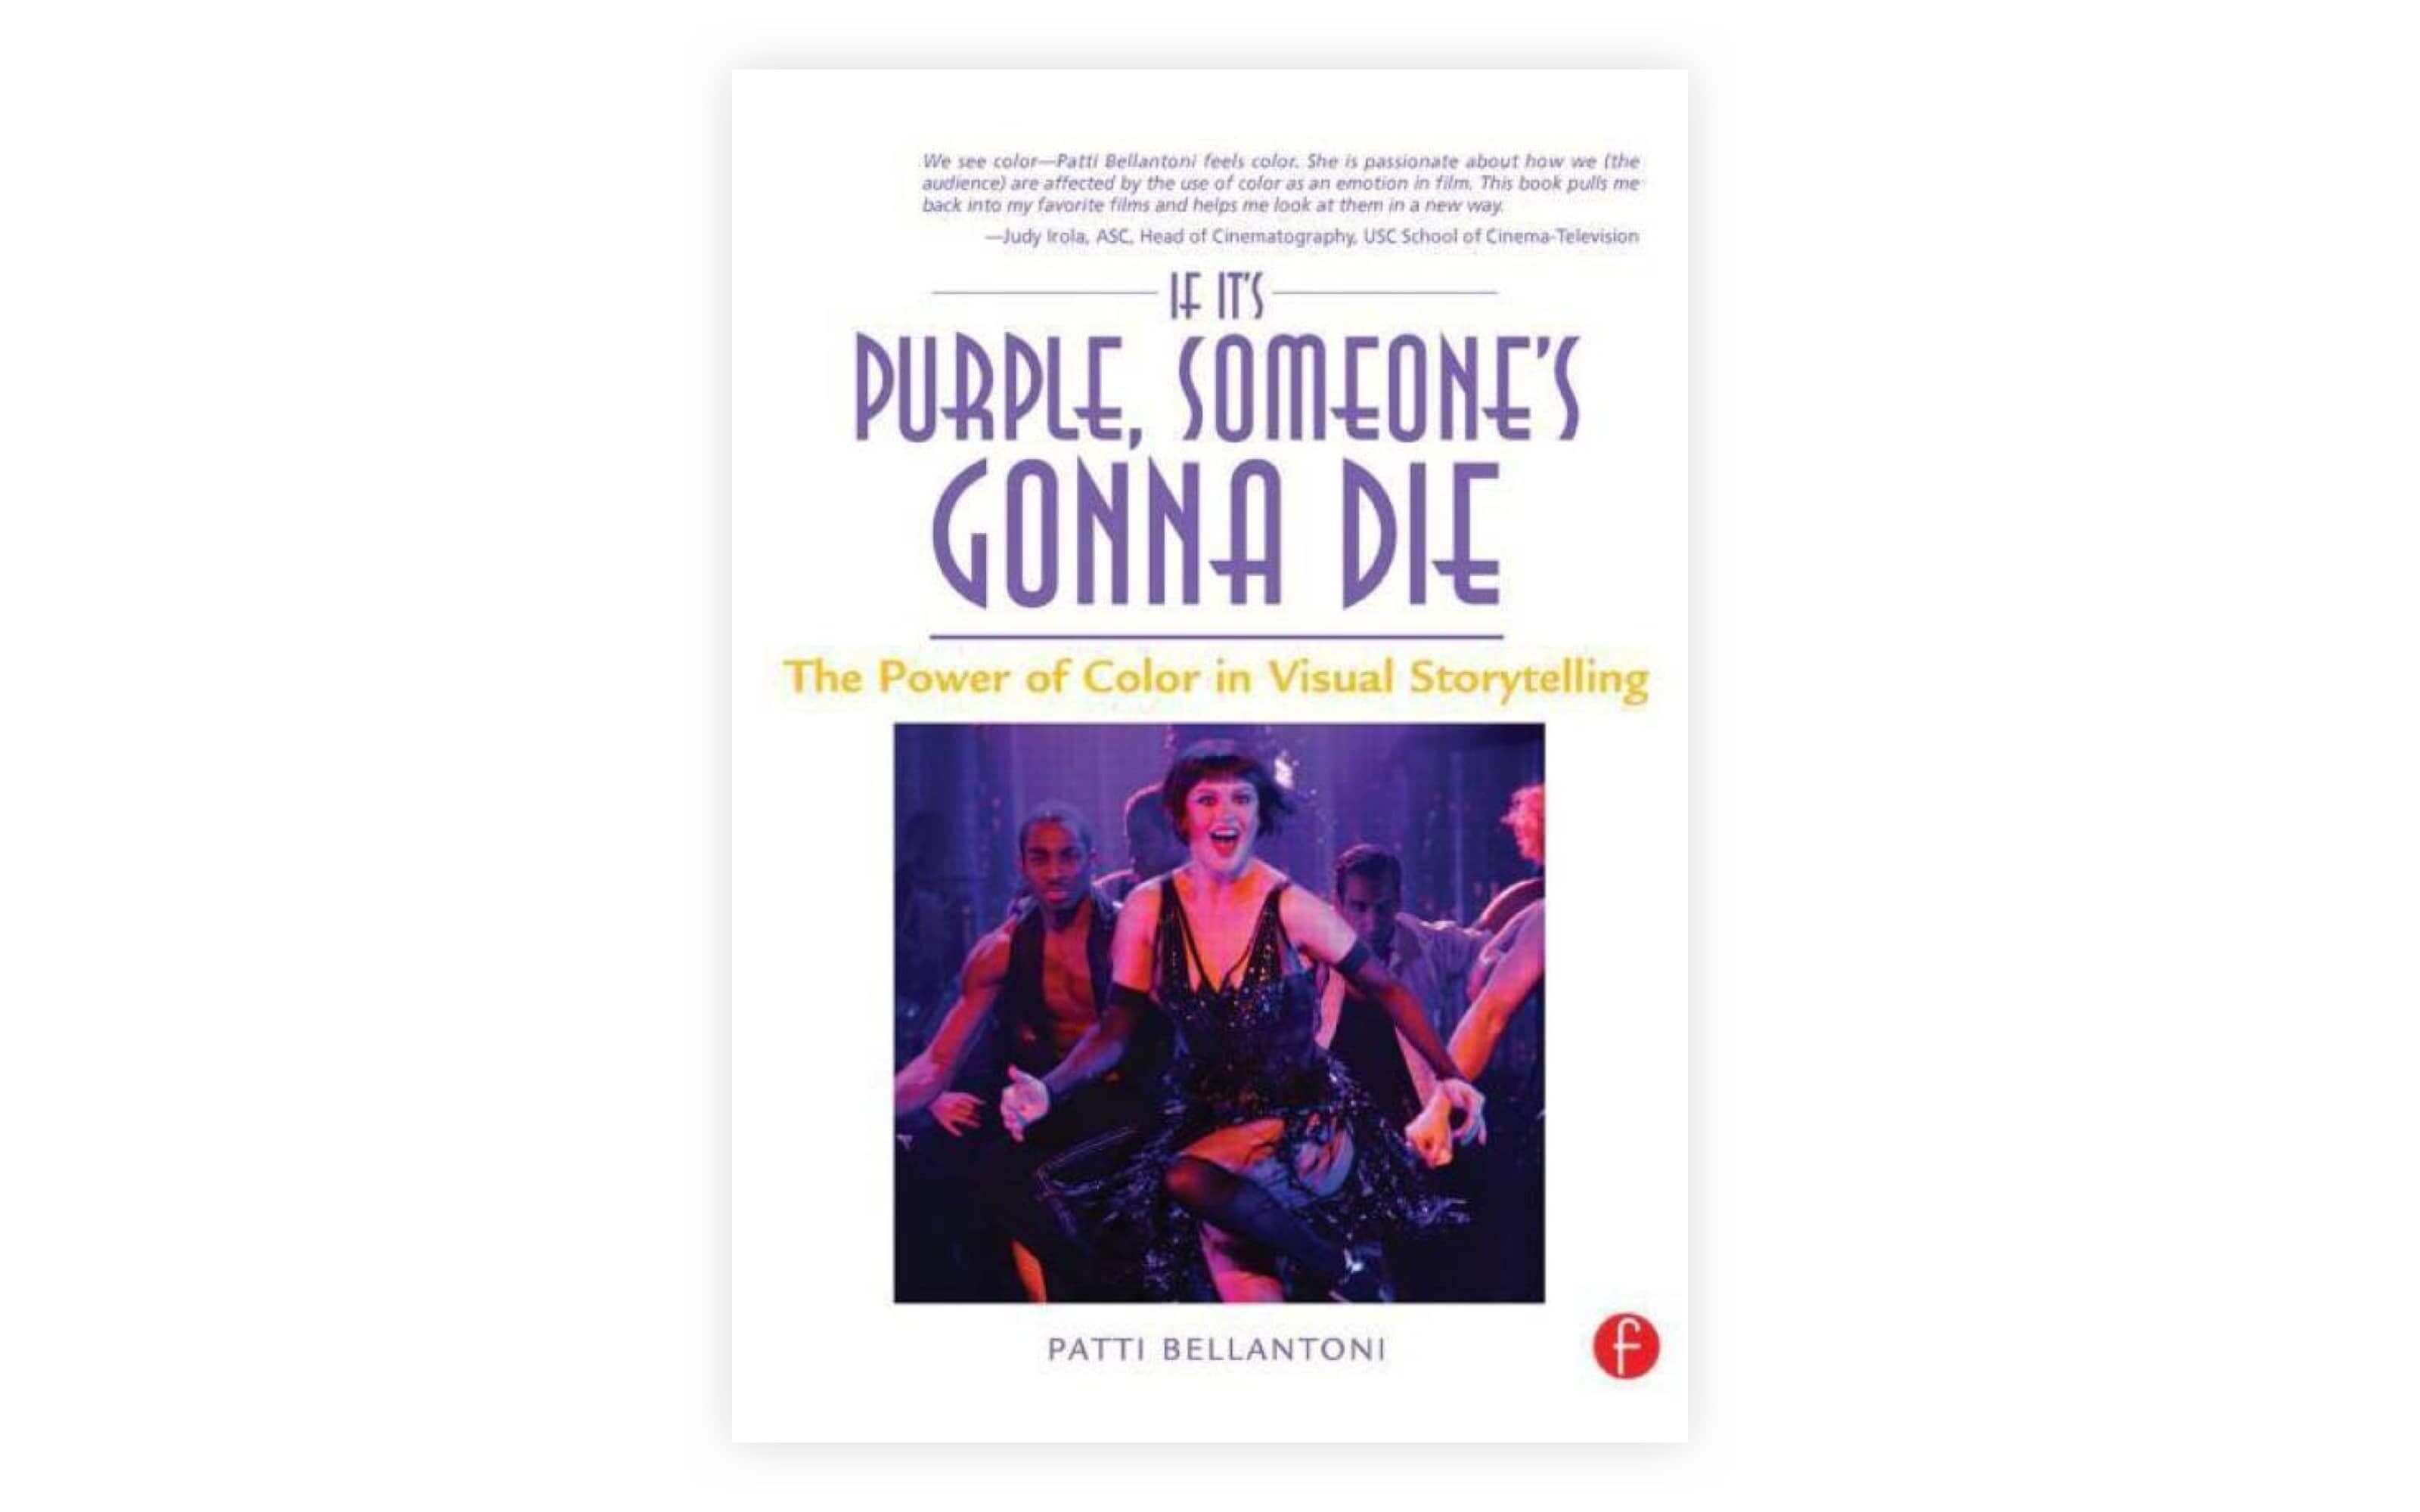 Best Screenwriting Books - Film Direction Books - If It's Purple Someone's Gonna Die by Patti Bellatoni - Film Production Books - StudioBinder